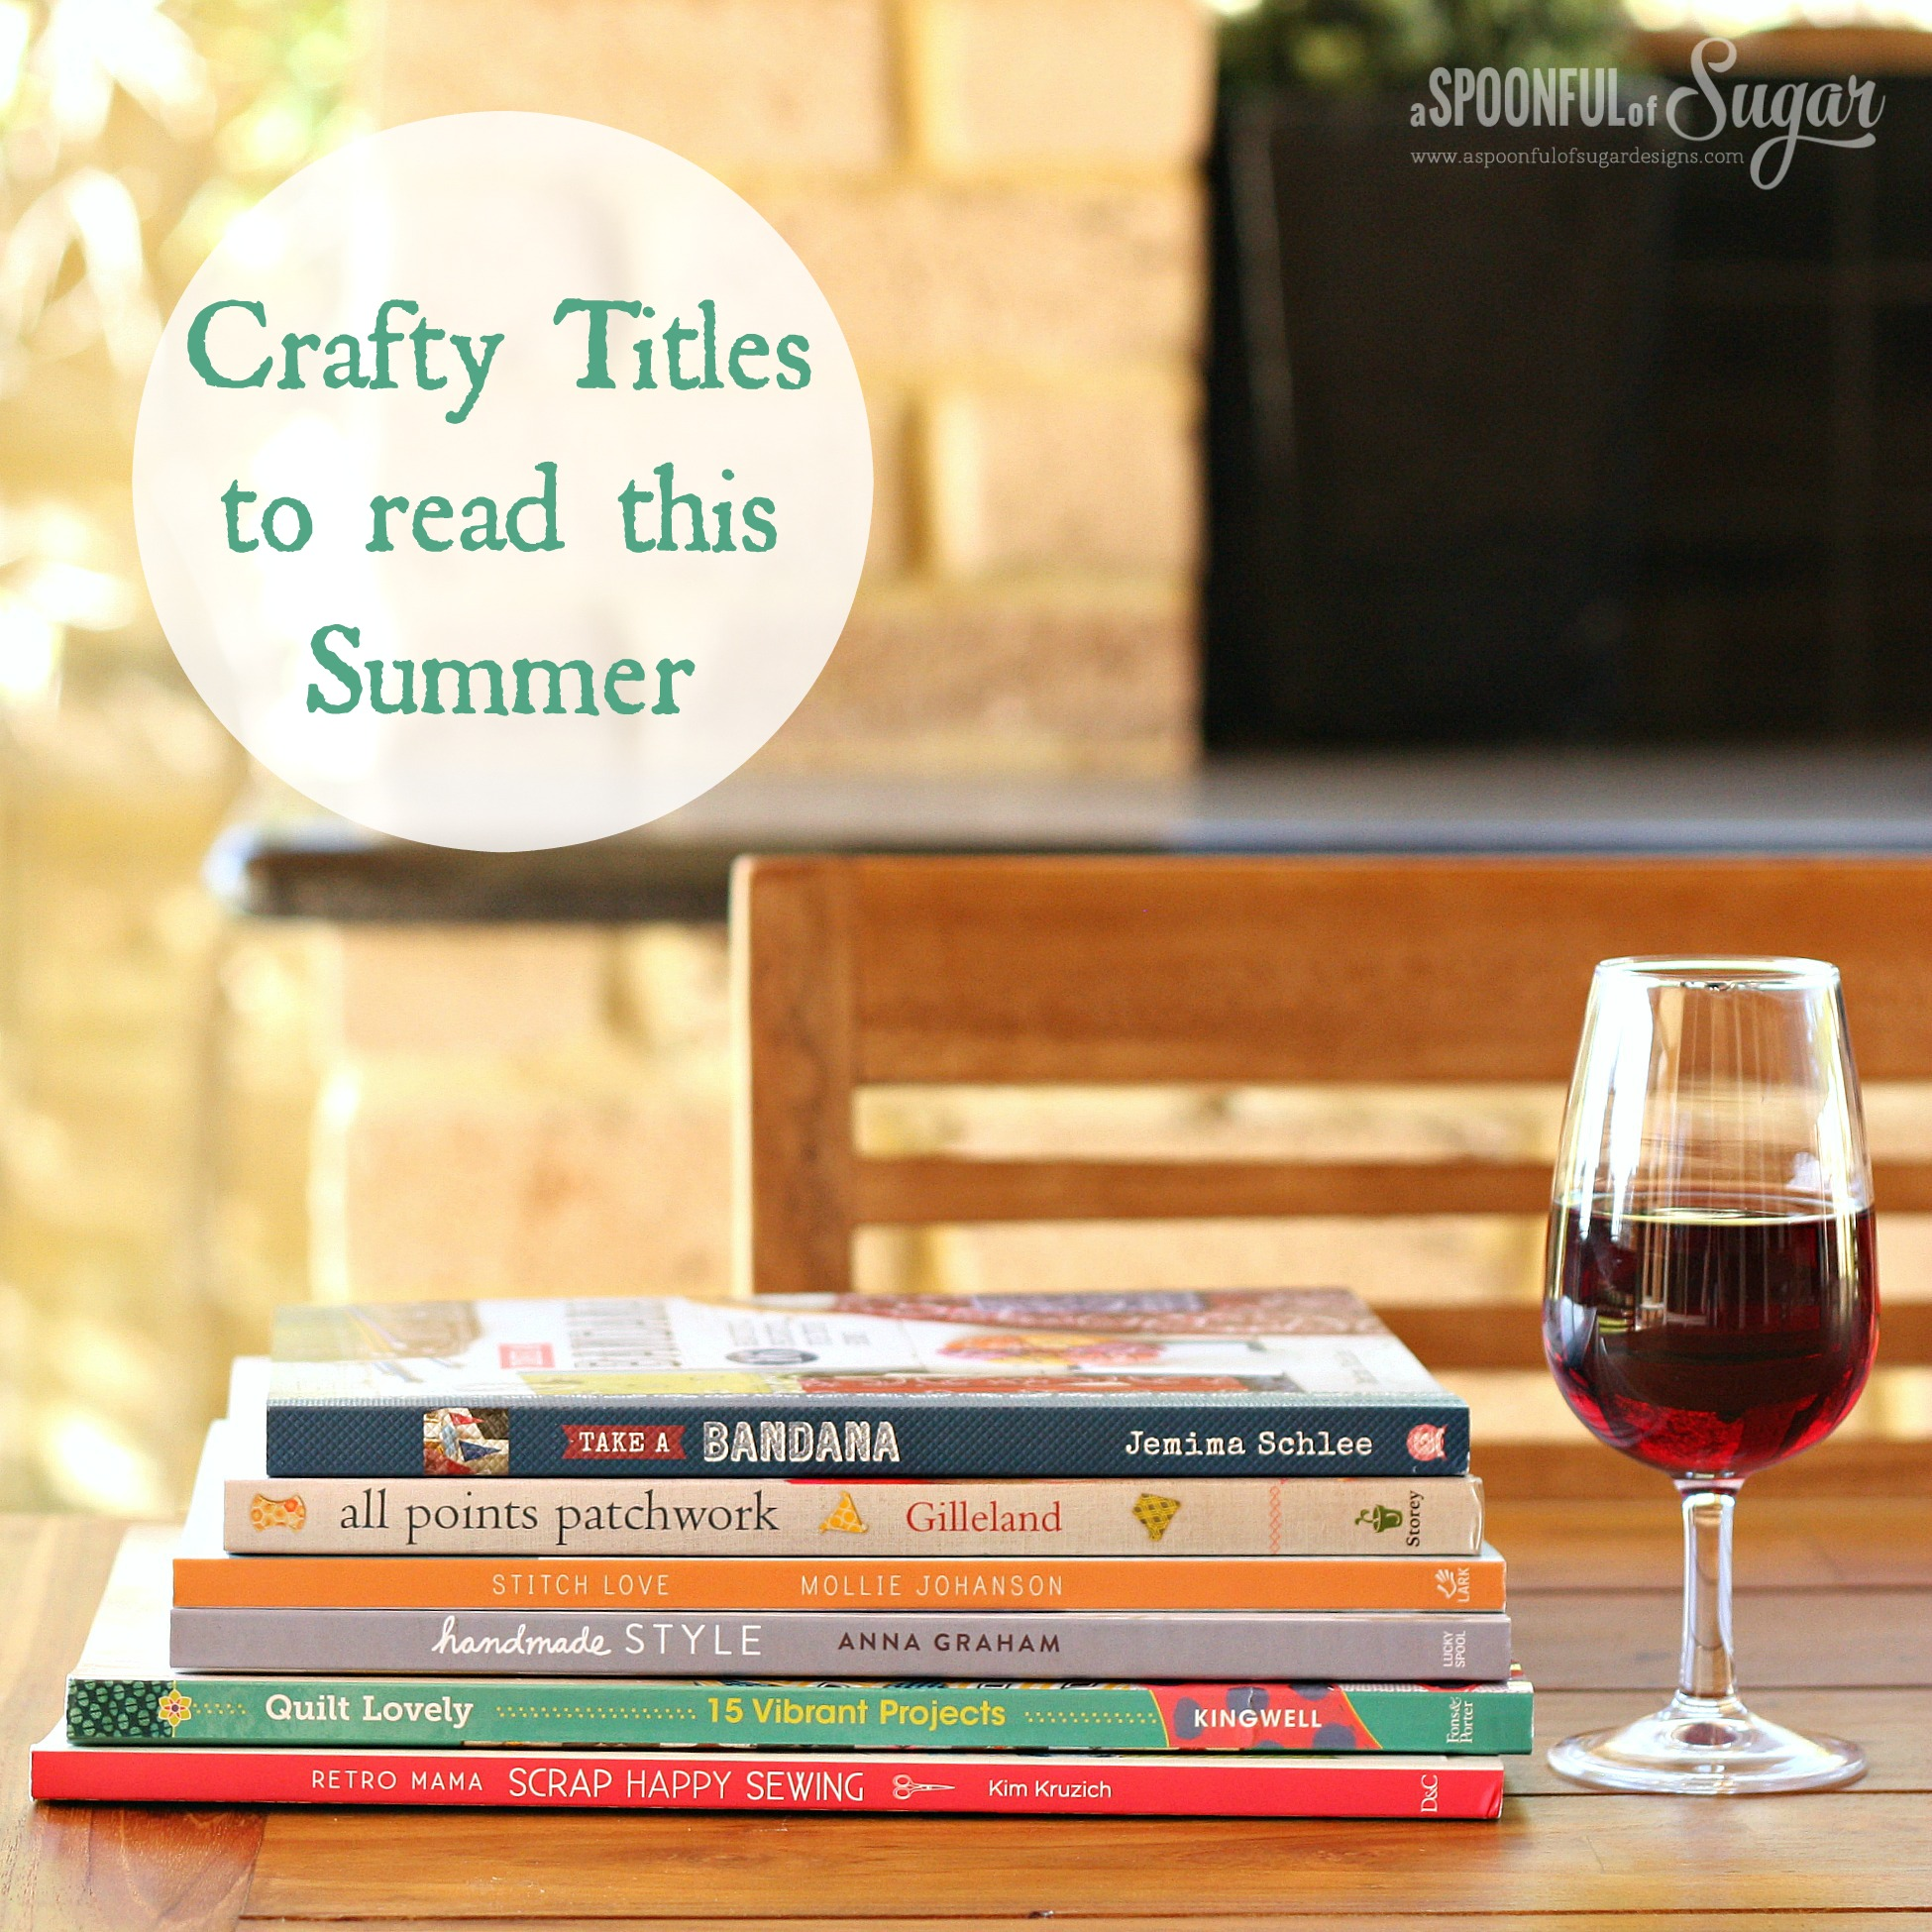 Crafty titles to read this summer